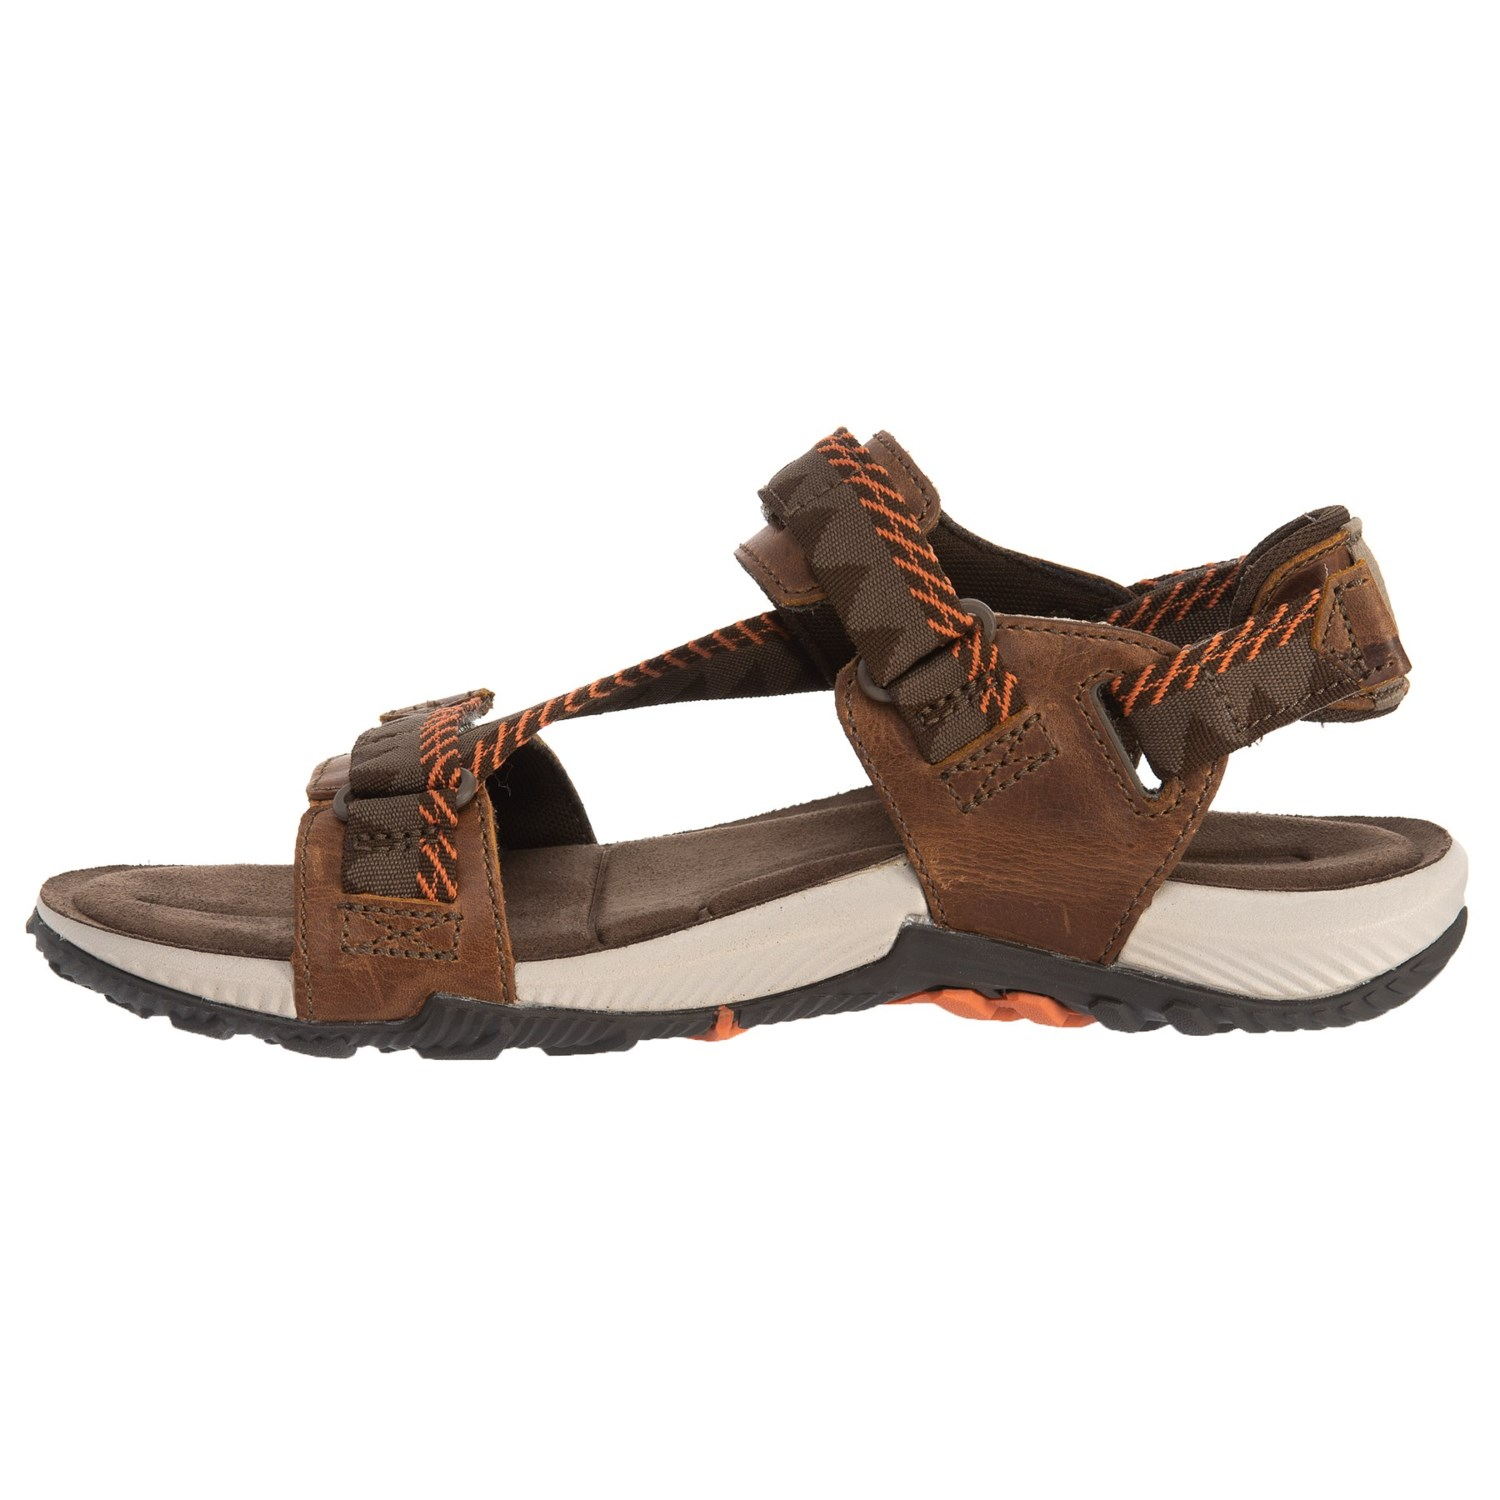 8d187838136f Merrell Terrant Convertible Sport Sandals (For Men) - Save 61%